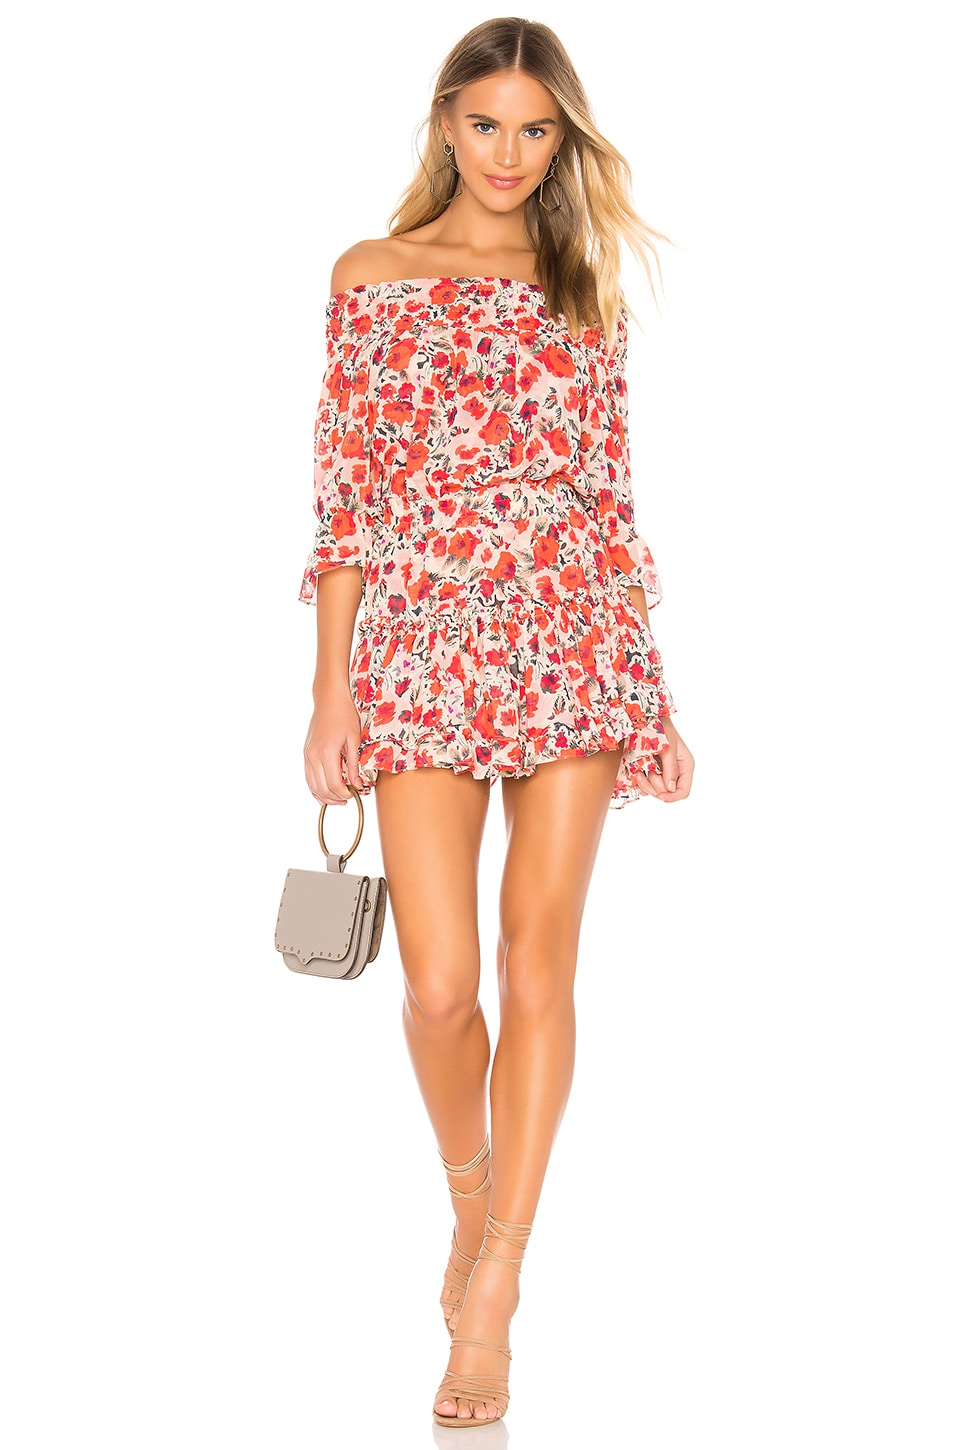 MISA Los Angeles X REVOLVE Darla Dress in Red Floral